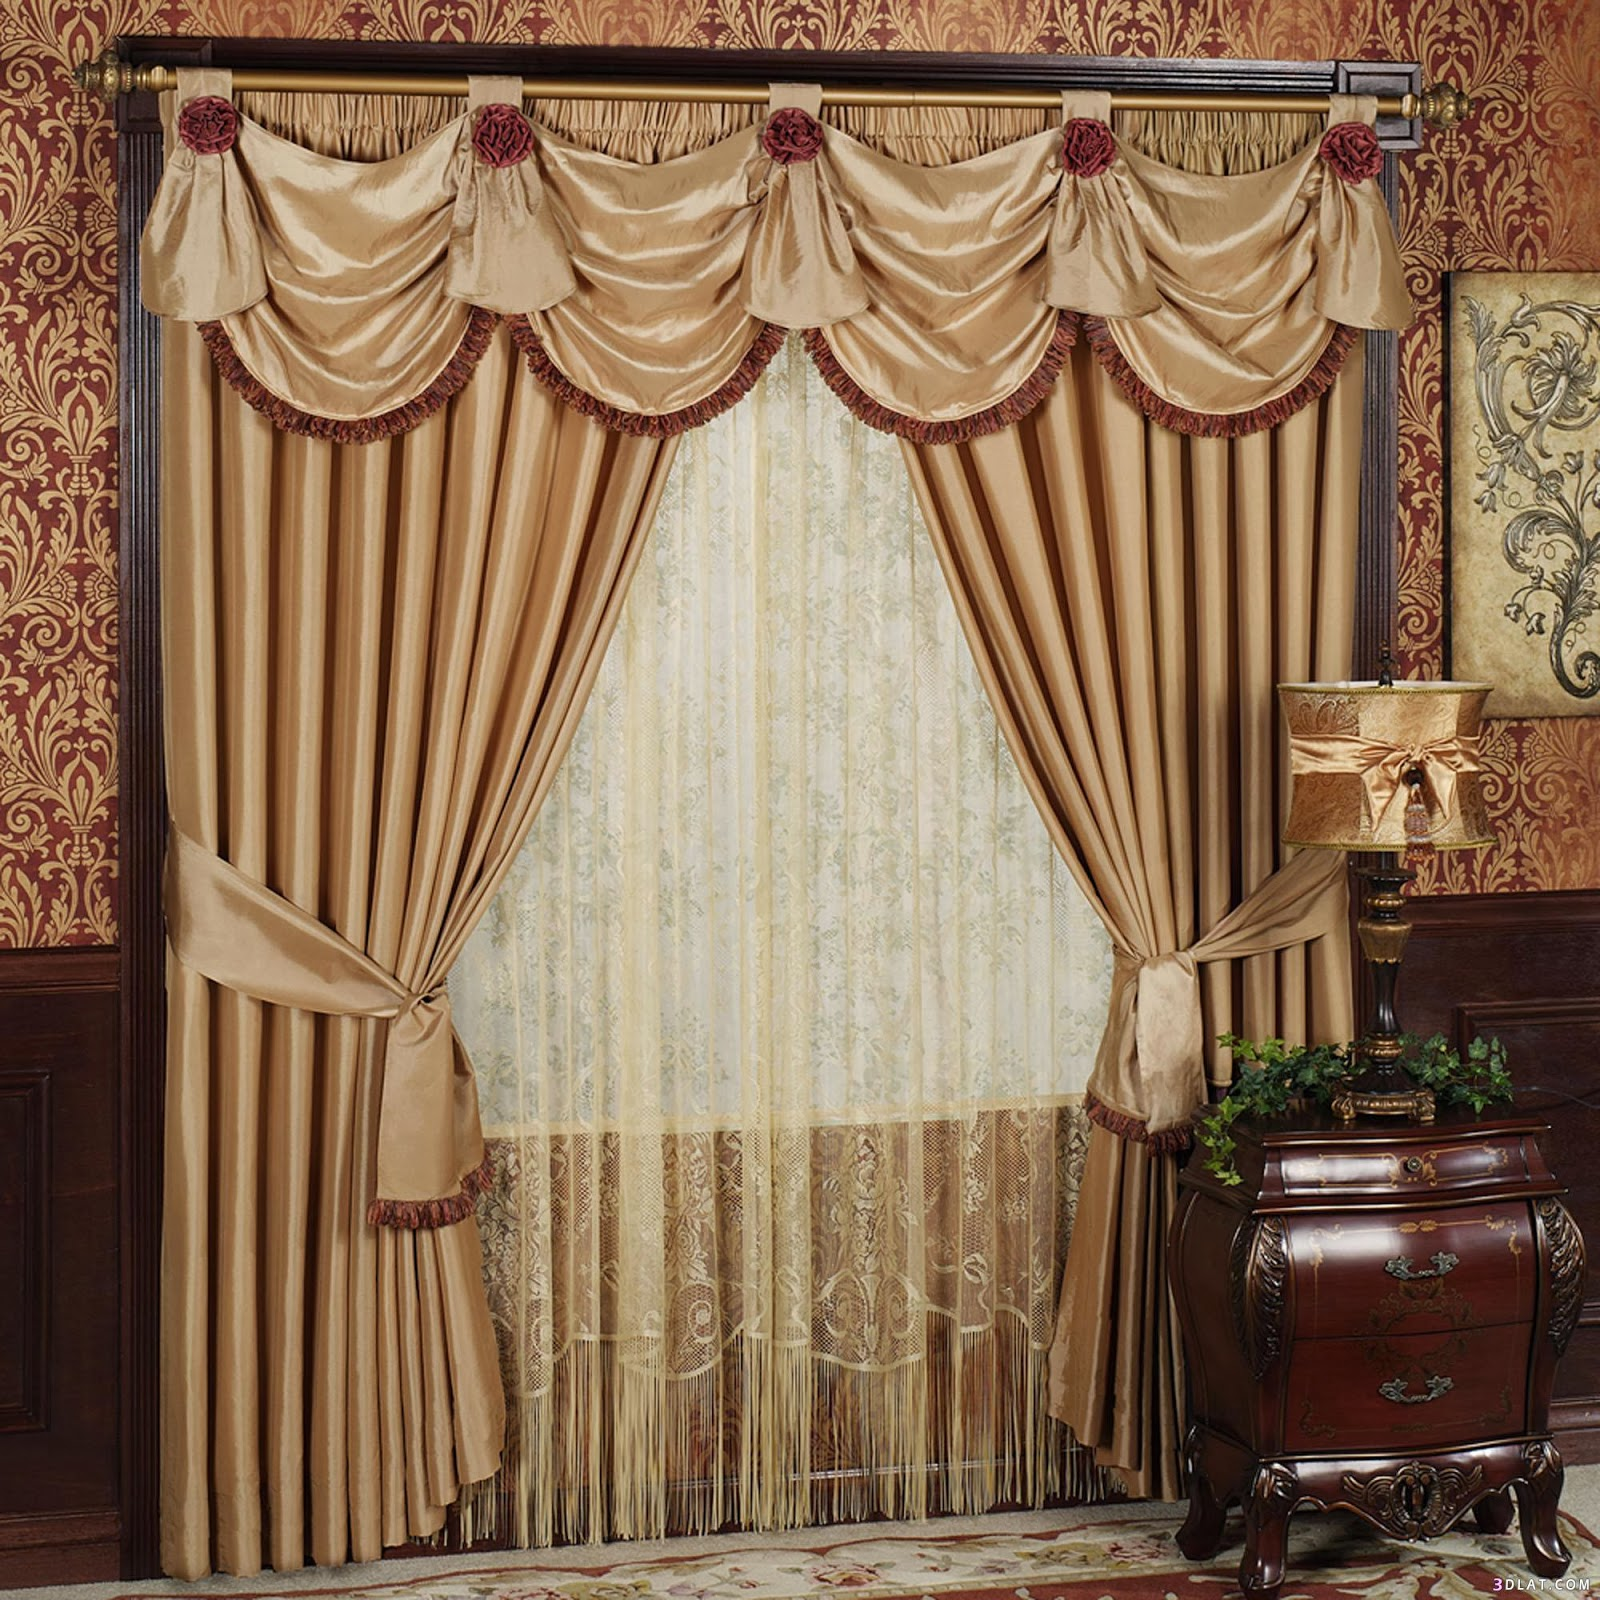 window curtain design ideas drapery design for bay window room curtains decorating ideas living room curtain - Drapery Design Ideas